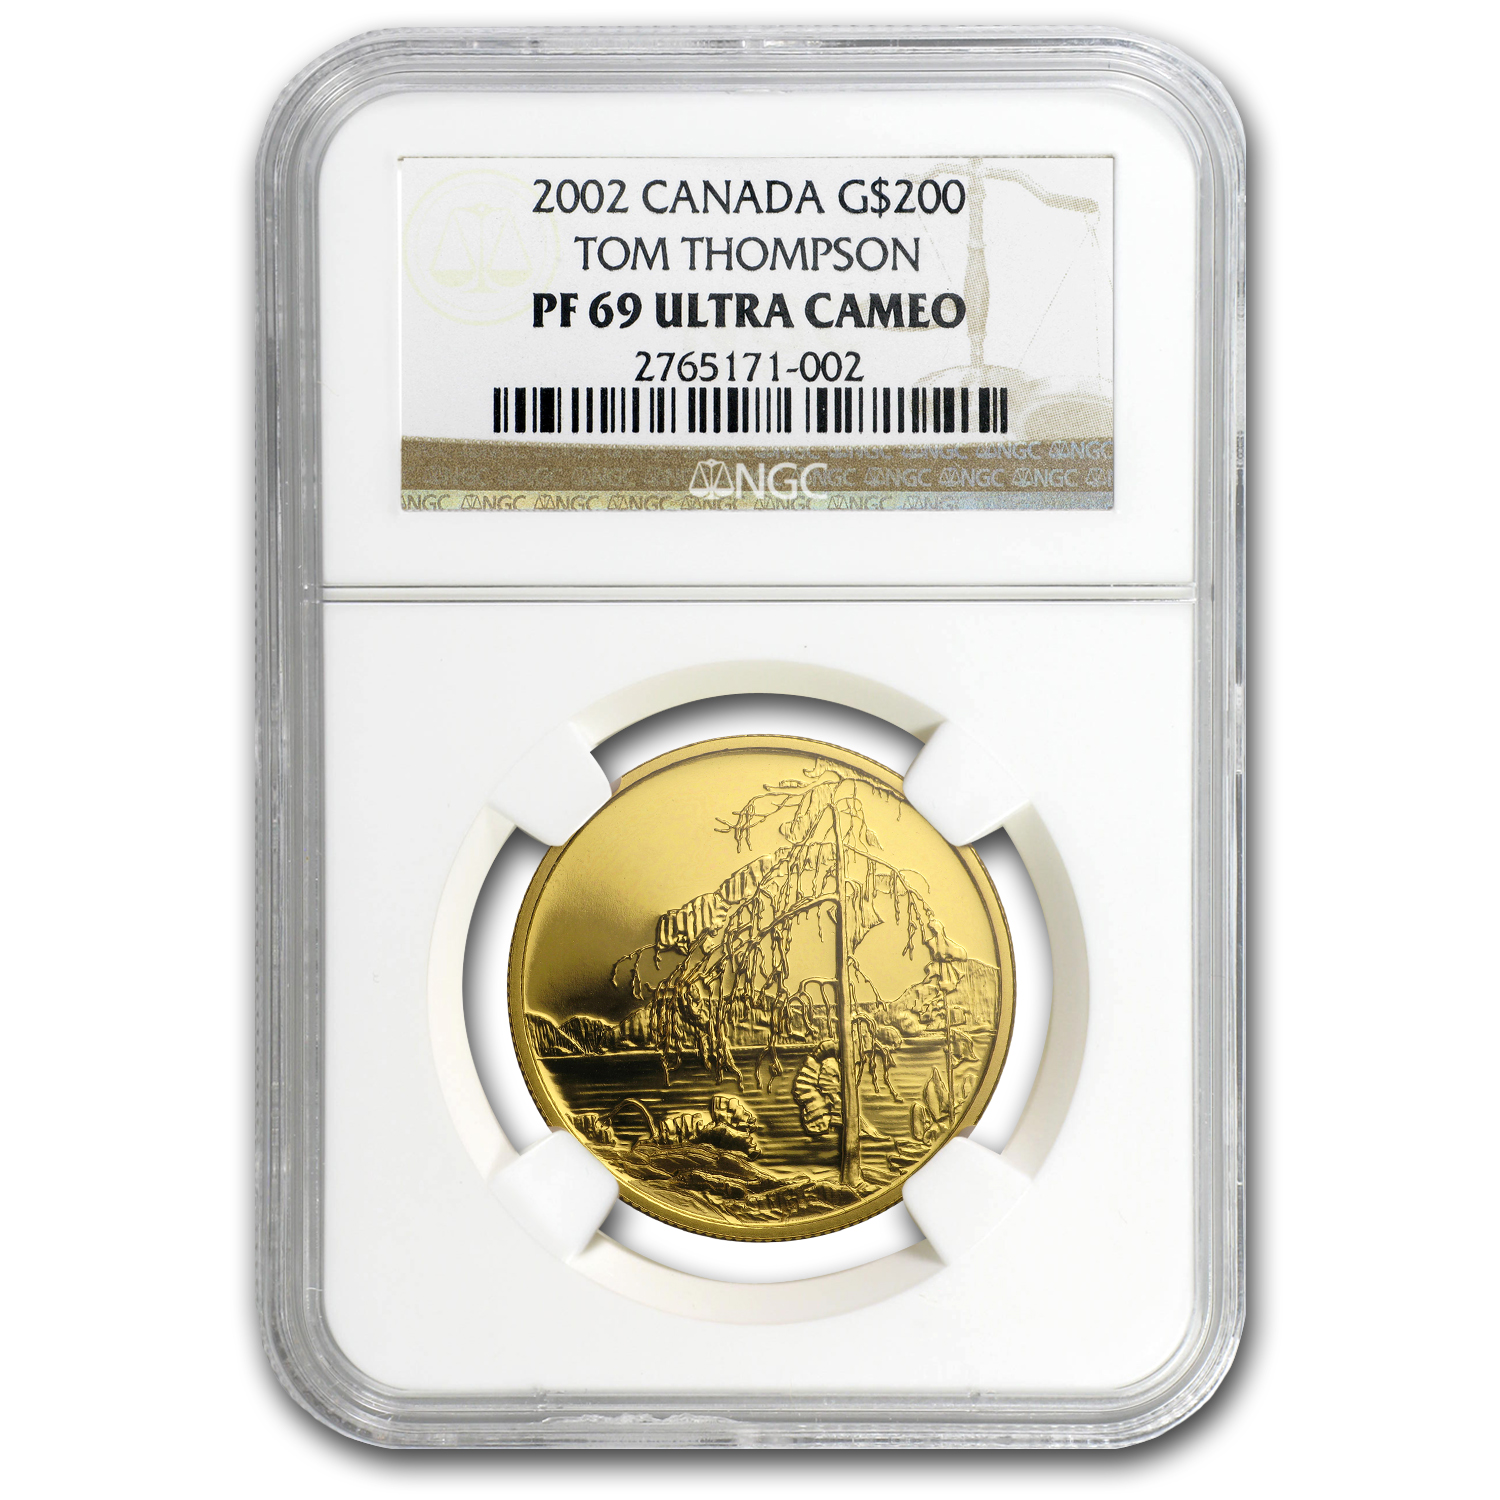 2002 Canada 1/2 oz Proof Gold $200 Jack Pine PF-69 NGC